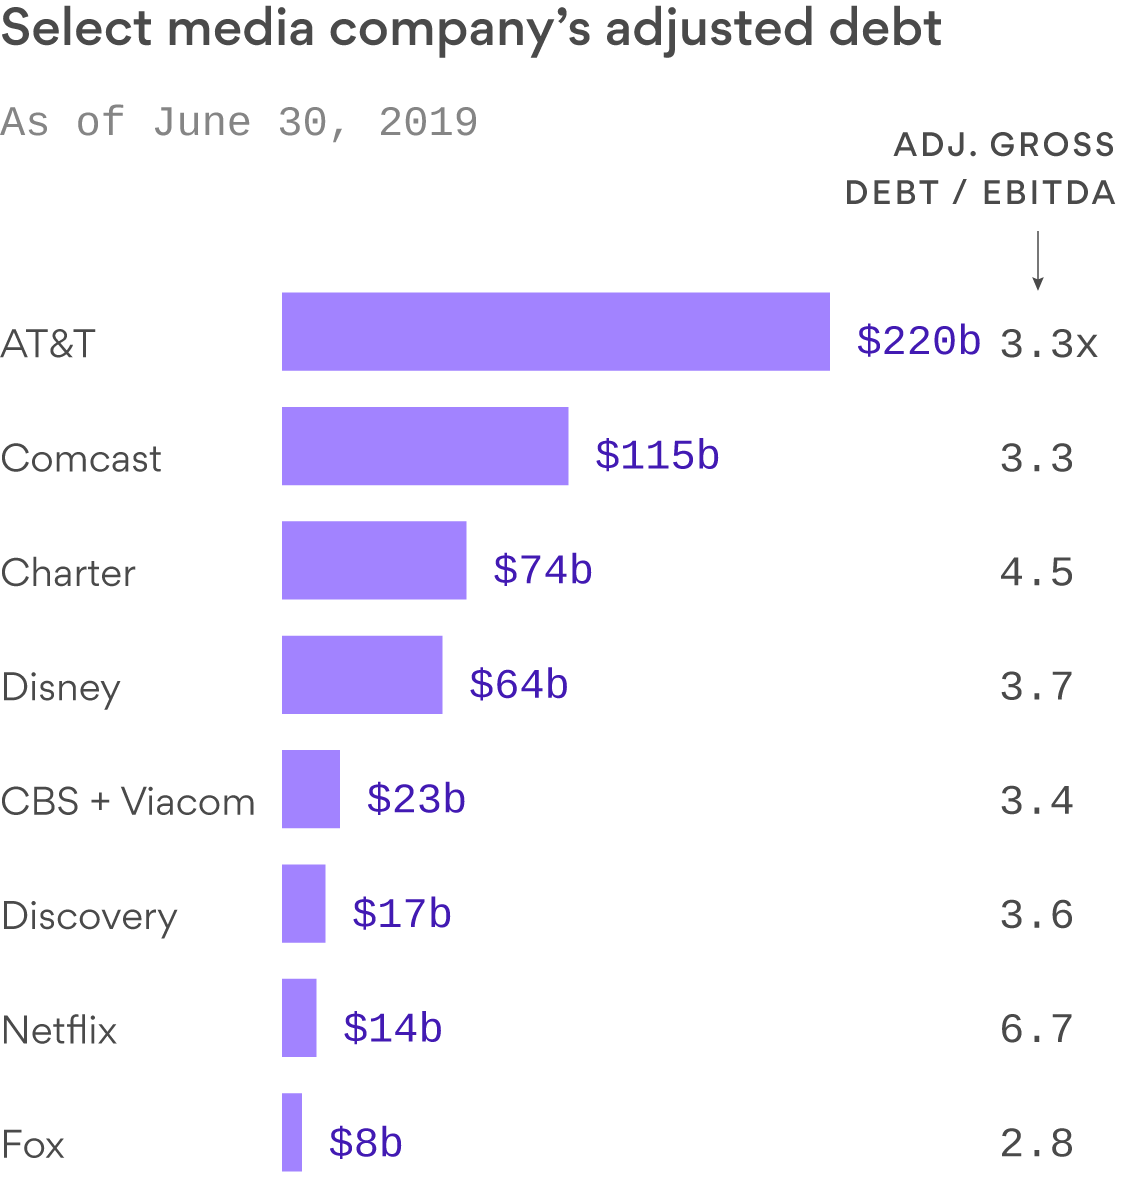 Media streamers like Netflix and AT&T wrestle with high debt loads